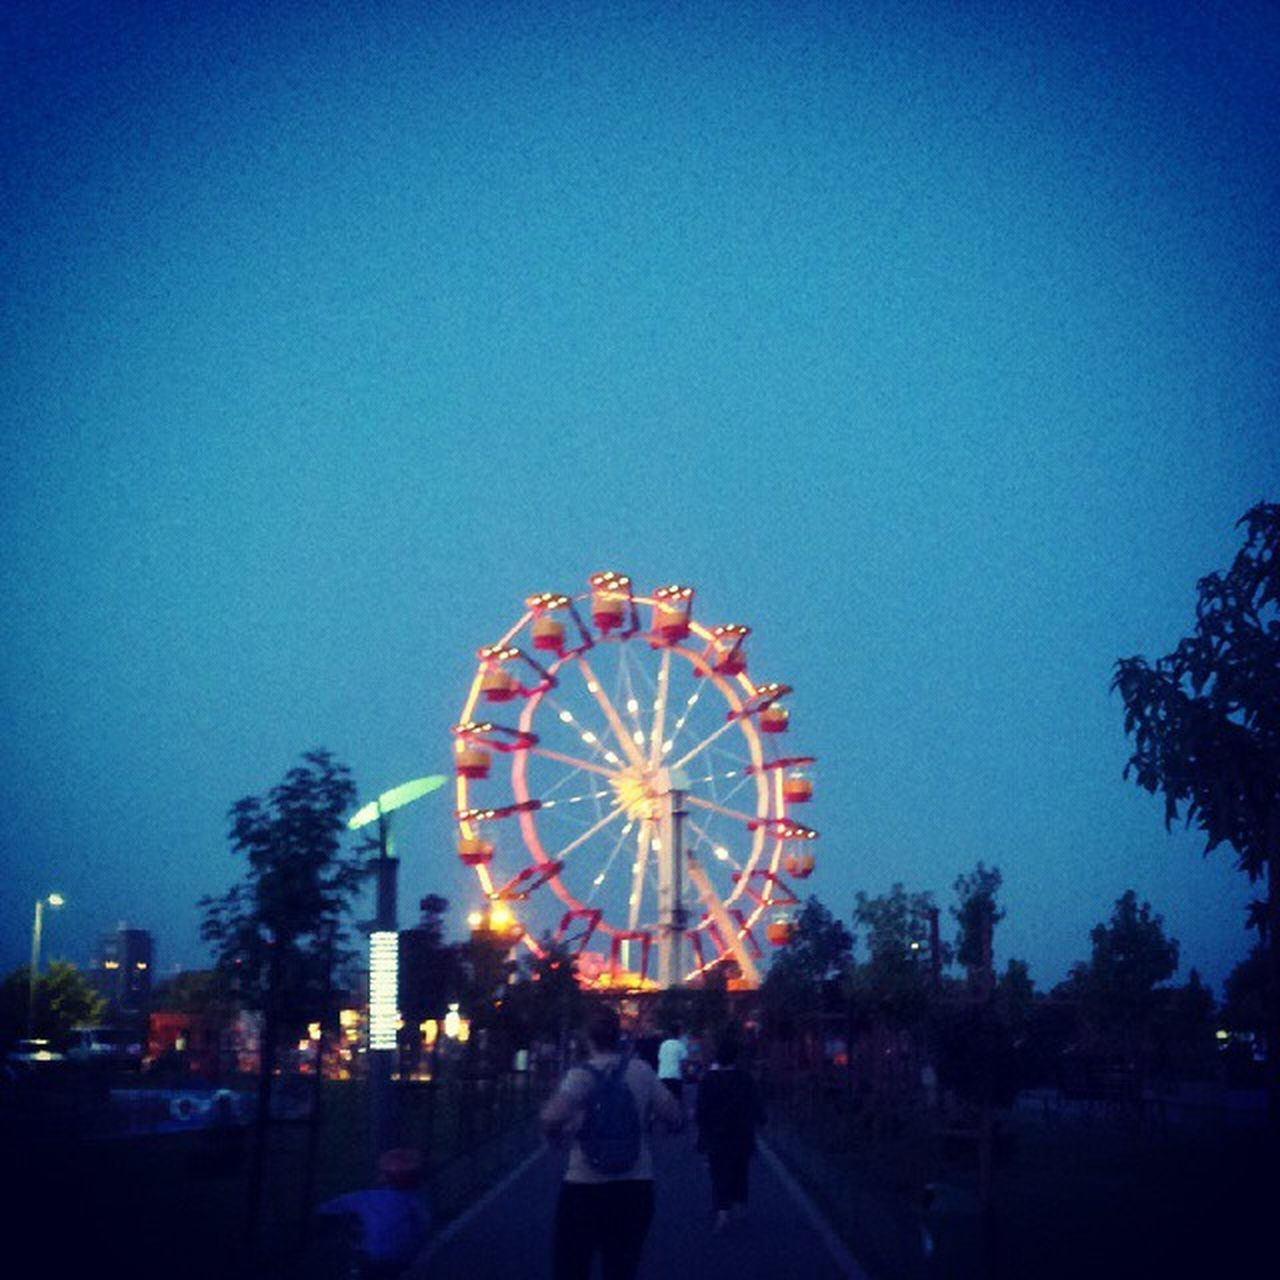 ferris wheel, illuminated, arts culture and entertainment, amusement park, clear sky, blue, low angle view, outdoors, night, architecture, large group of people, tree, sky, people